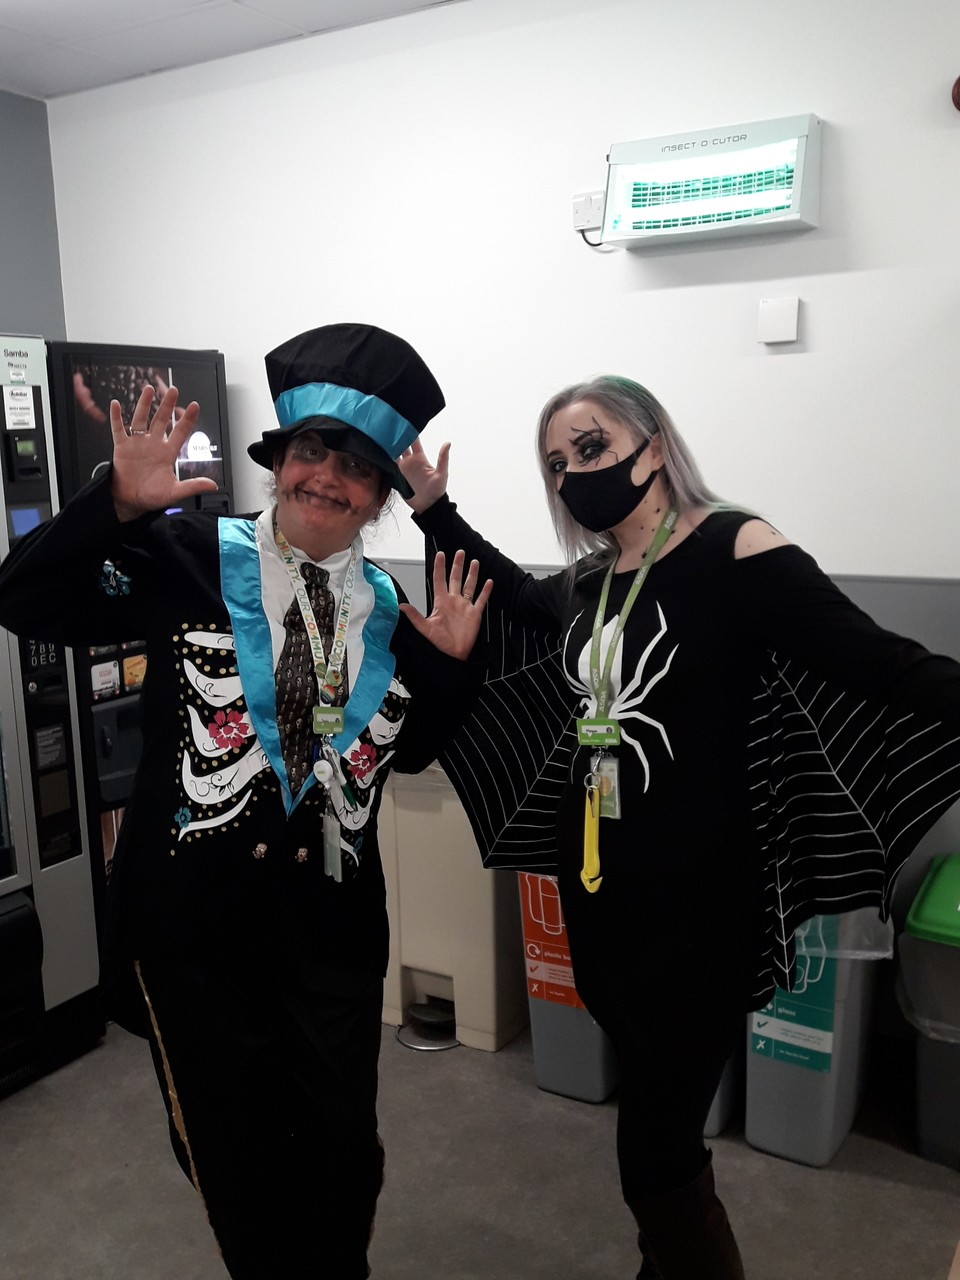 Getting our spook on  | Asda Dundee West